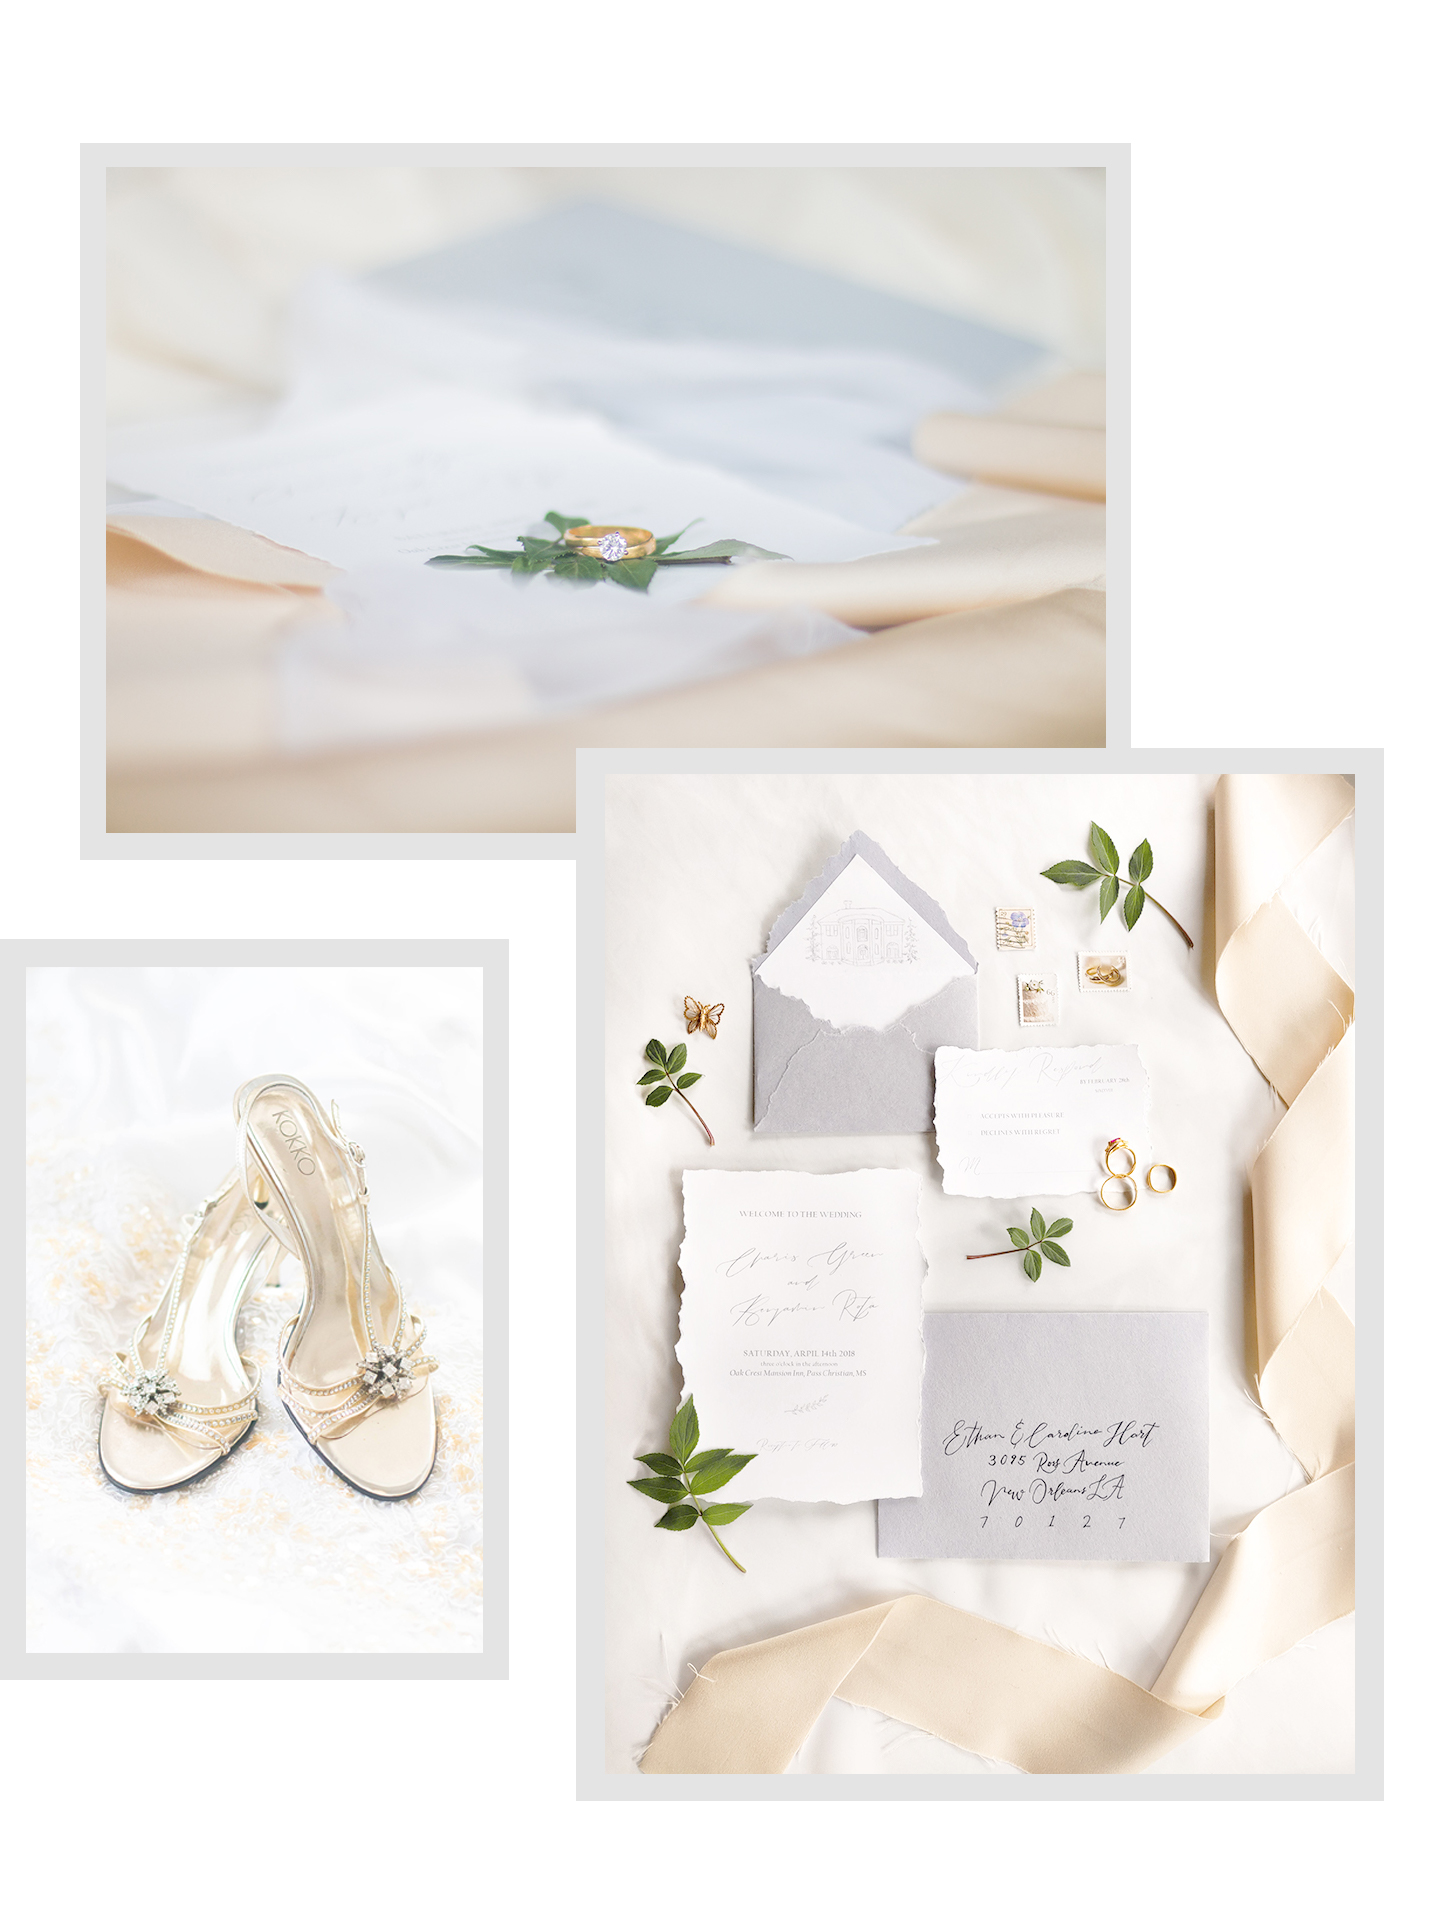 Invitation Suite | Luxury wedding photographer Investment